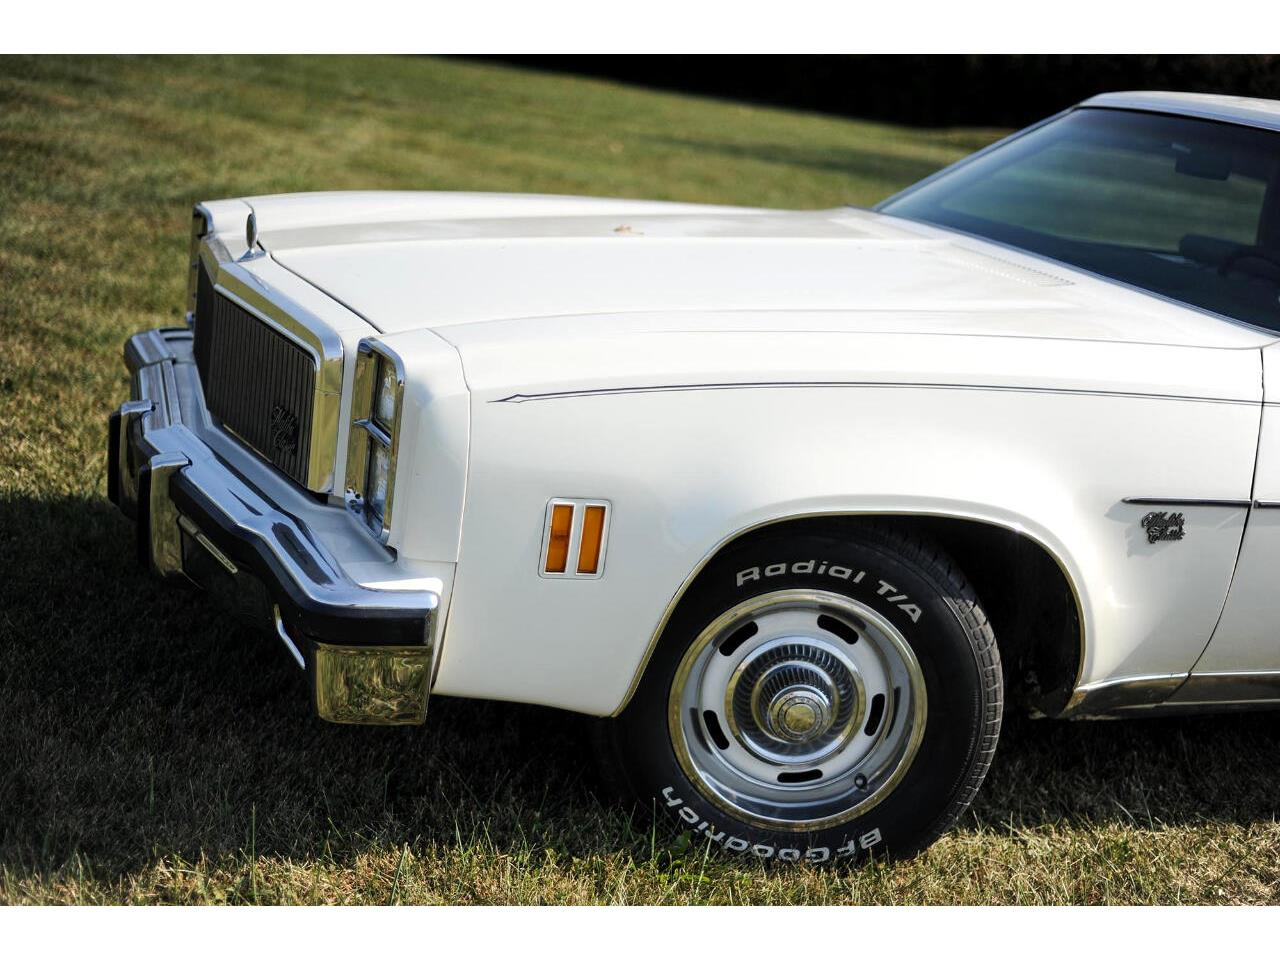 1977 Chevrolet Malibu Classic (CC-1411935) for sale in Greenfield, Indiana